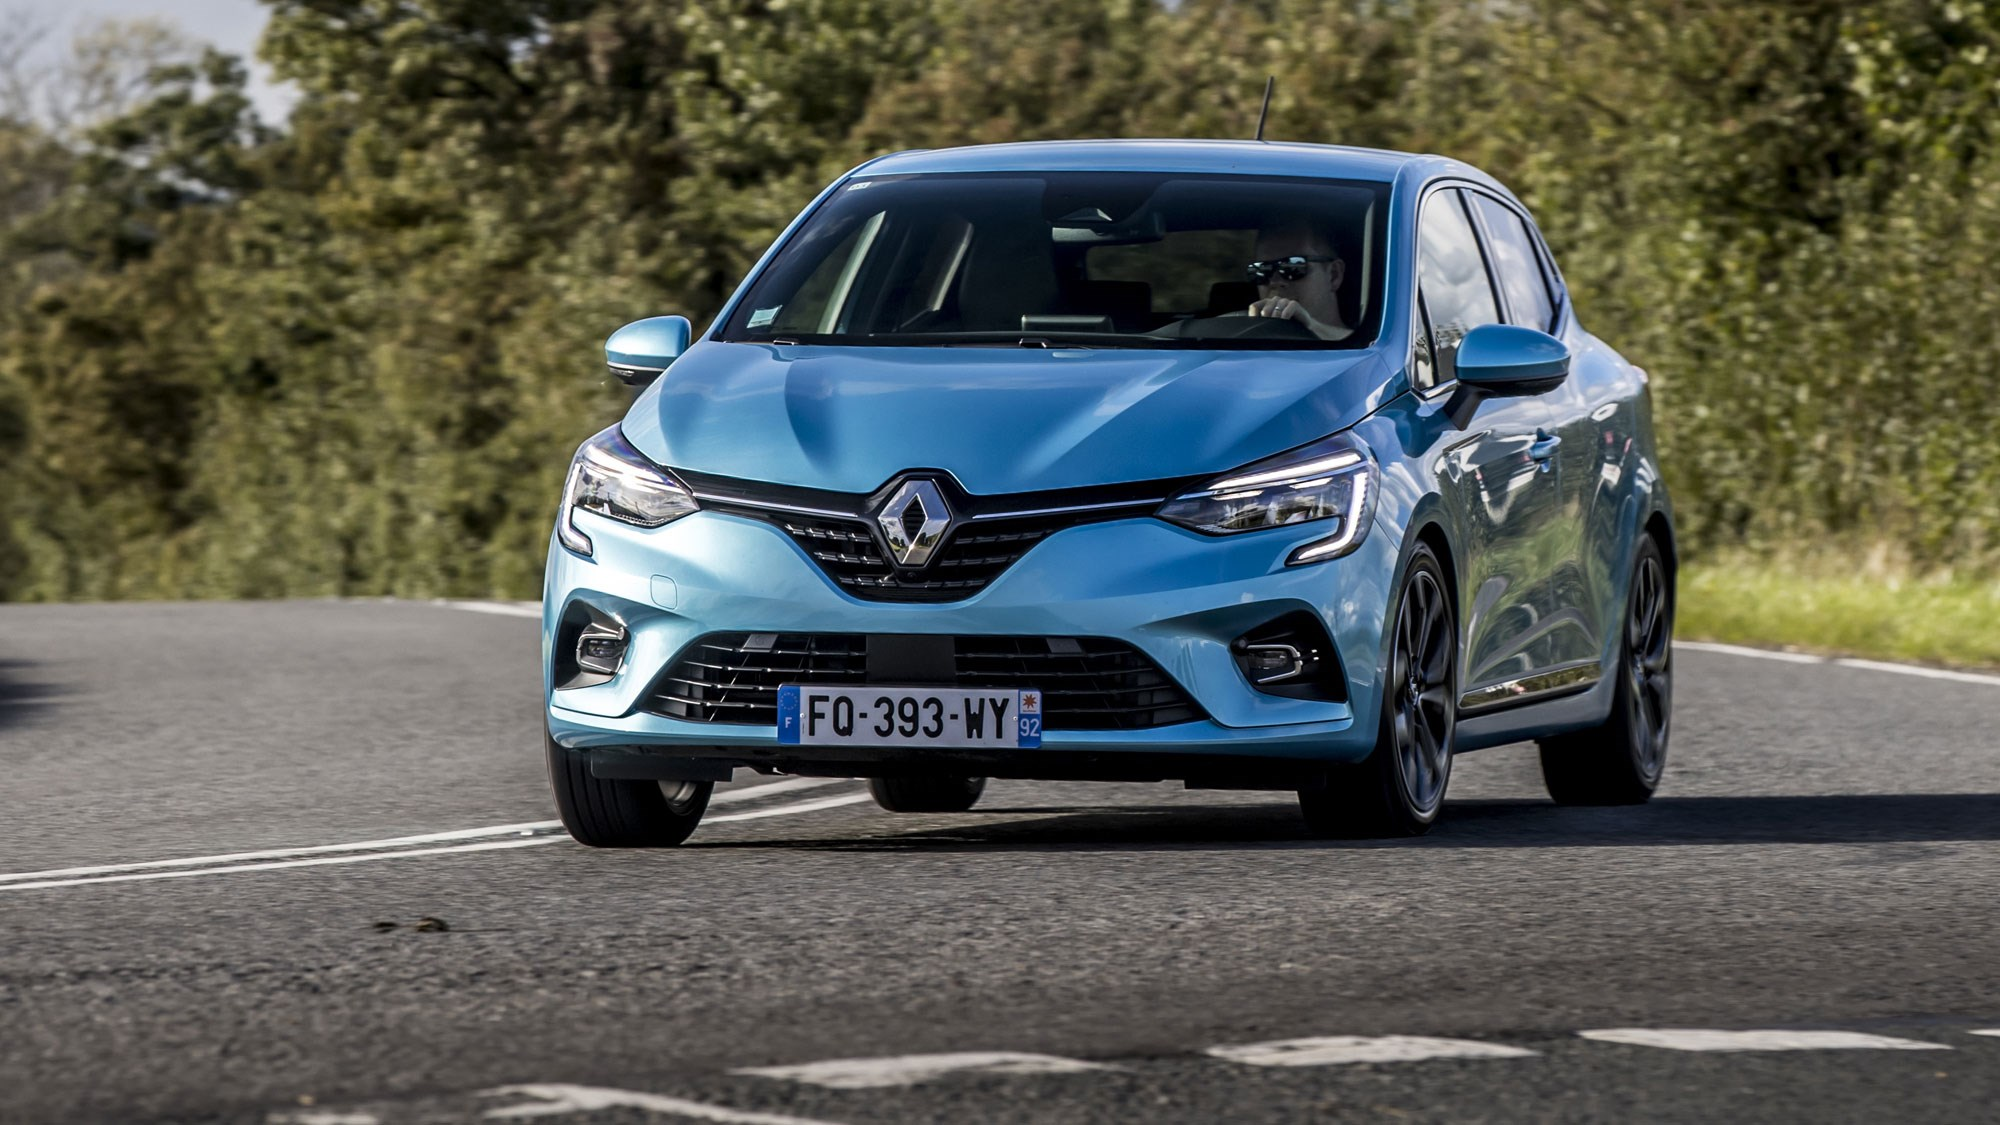 Renault Clio E-Tech hybrid review, 2020, front view, blue, driving round corner